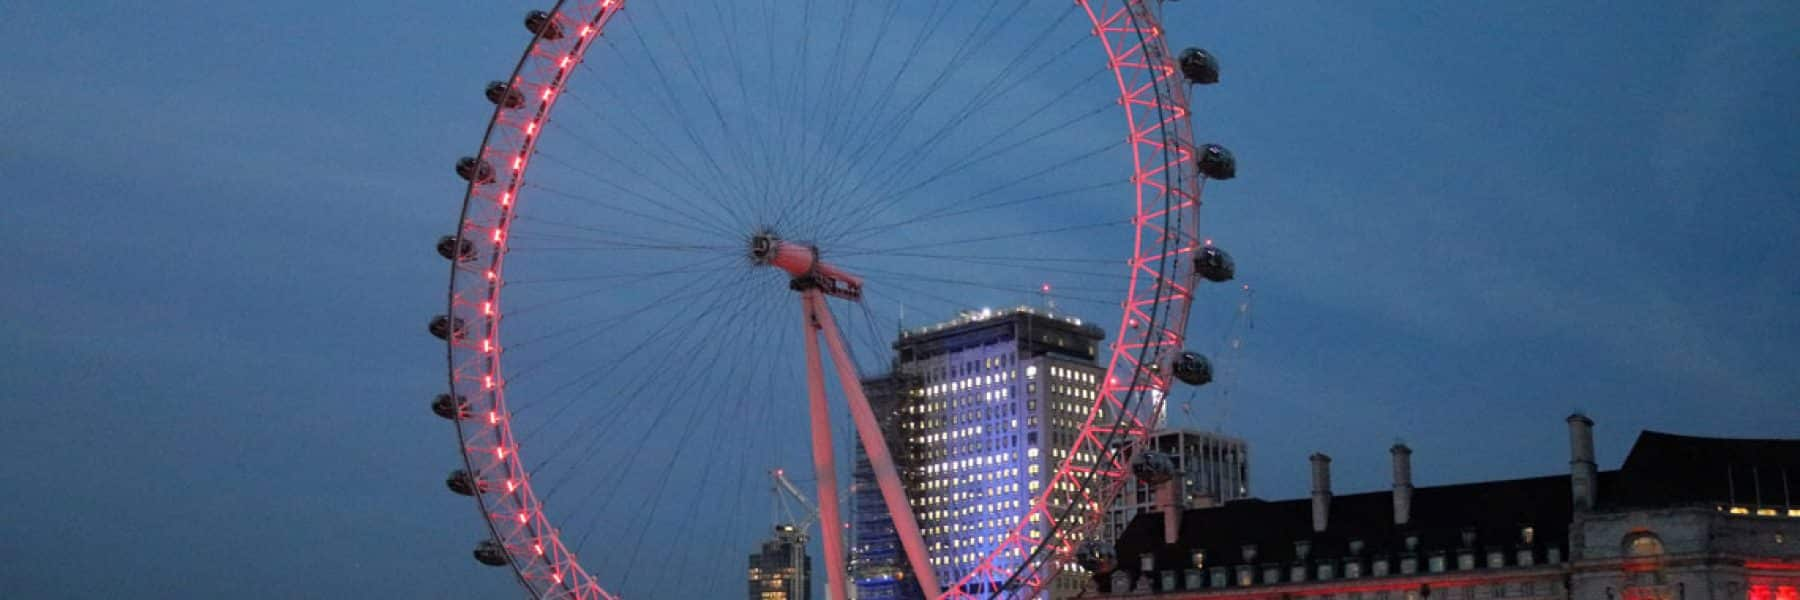 The London Eye & County Hall at dusk